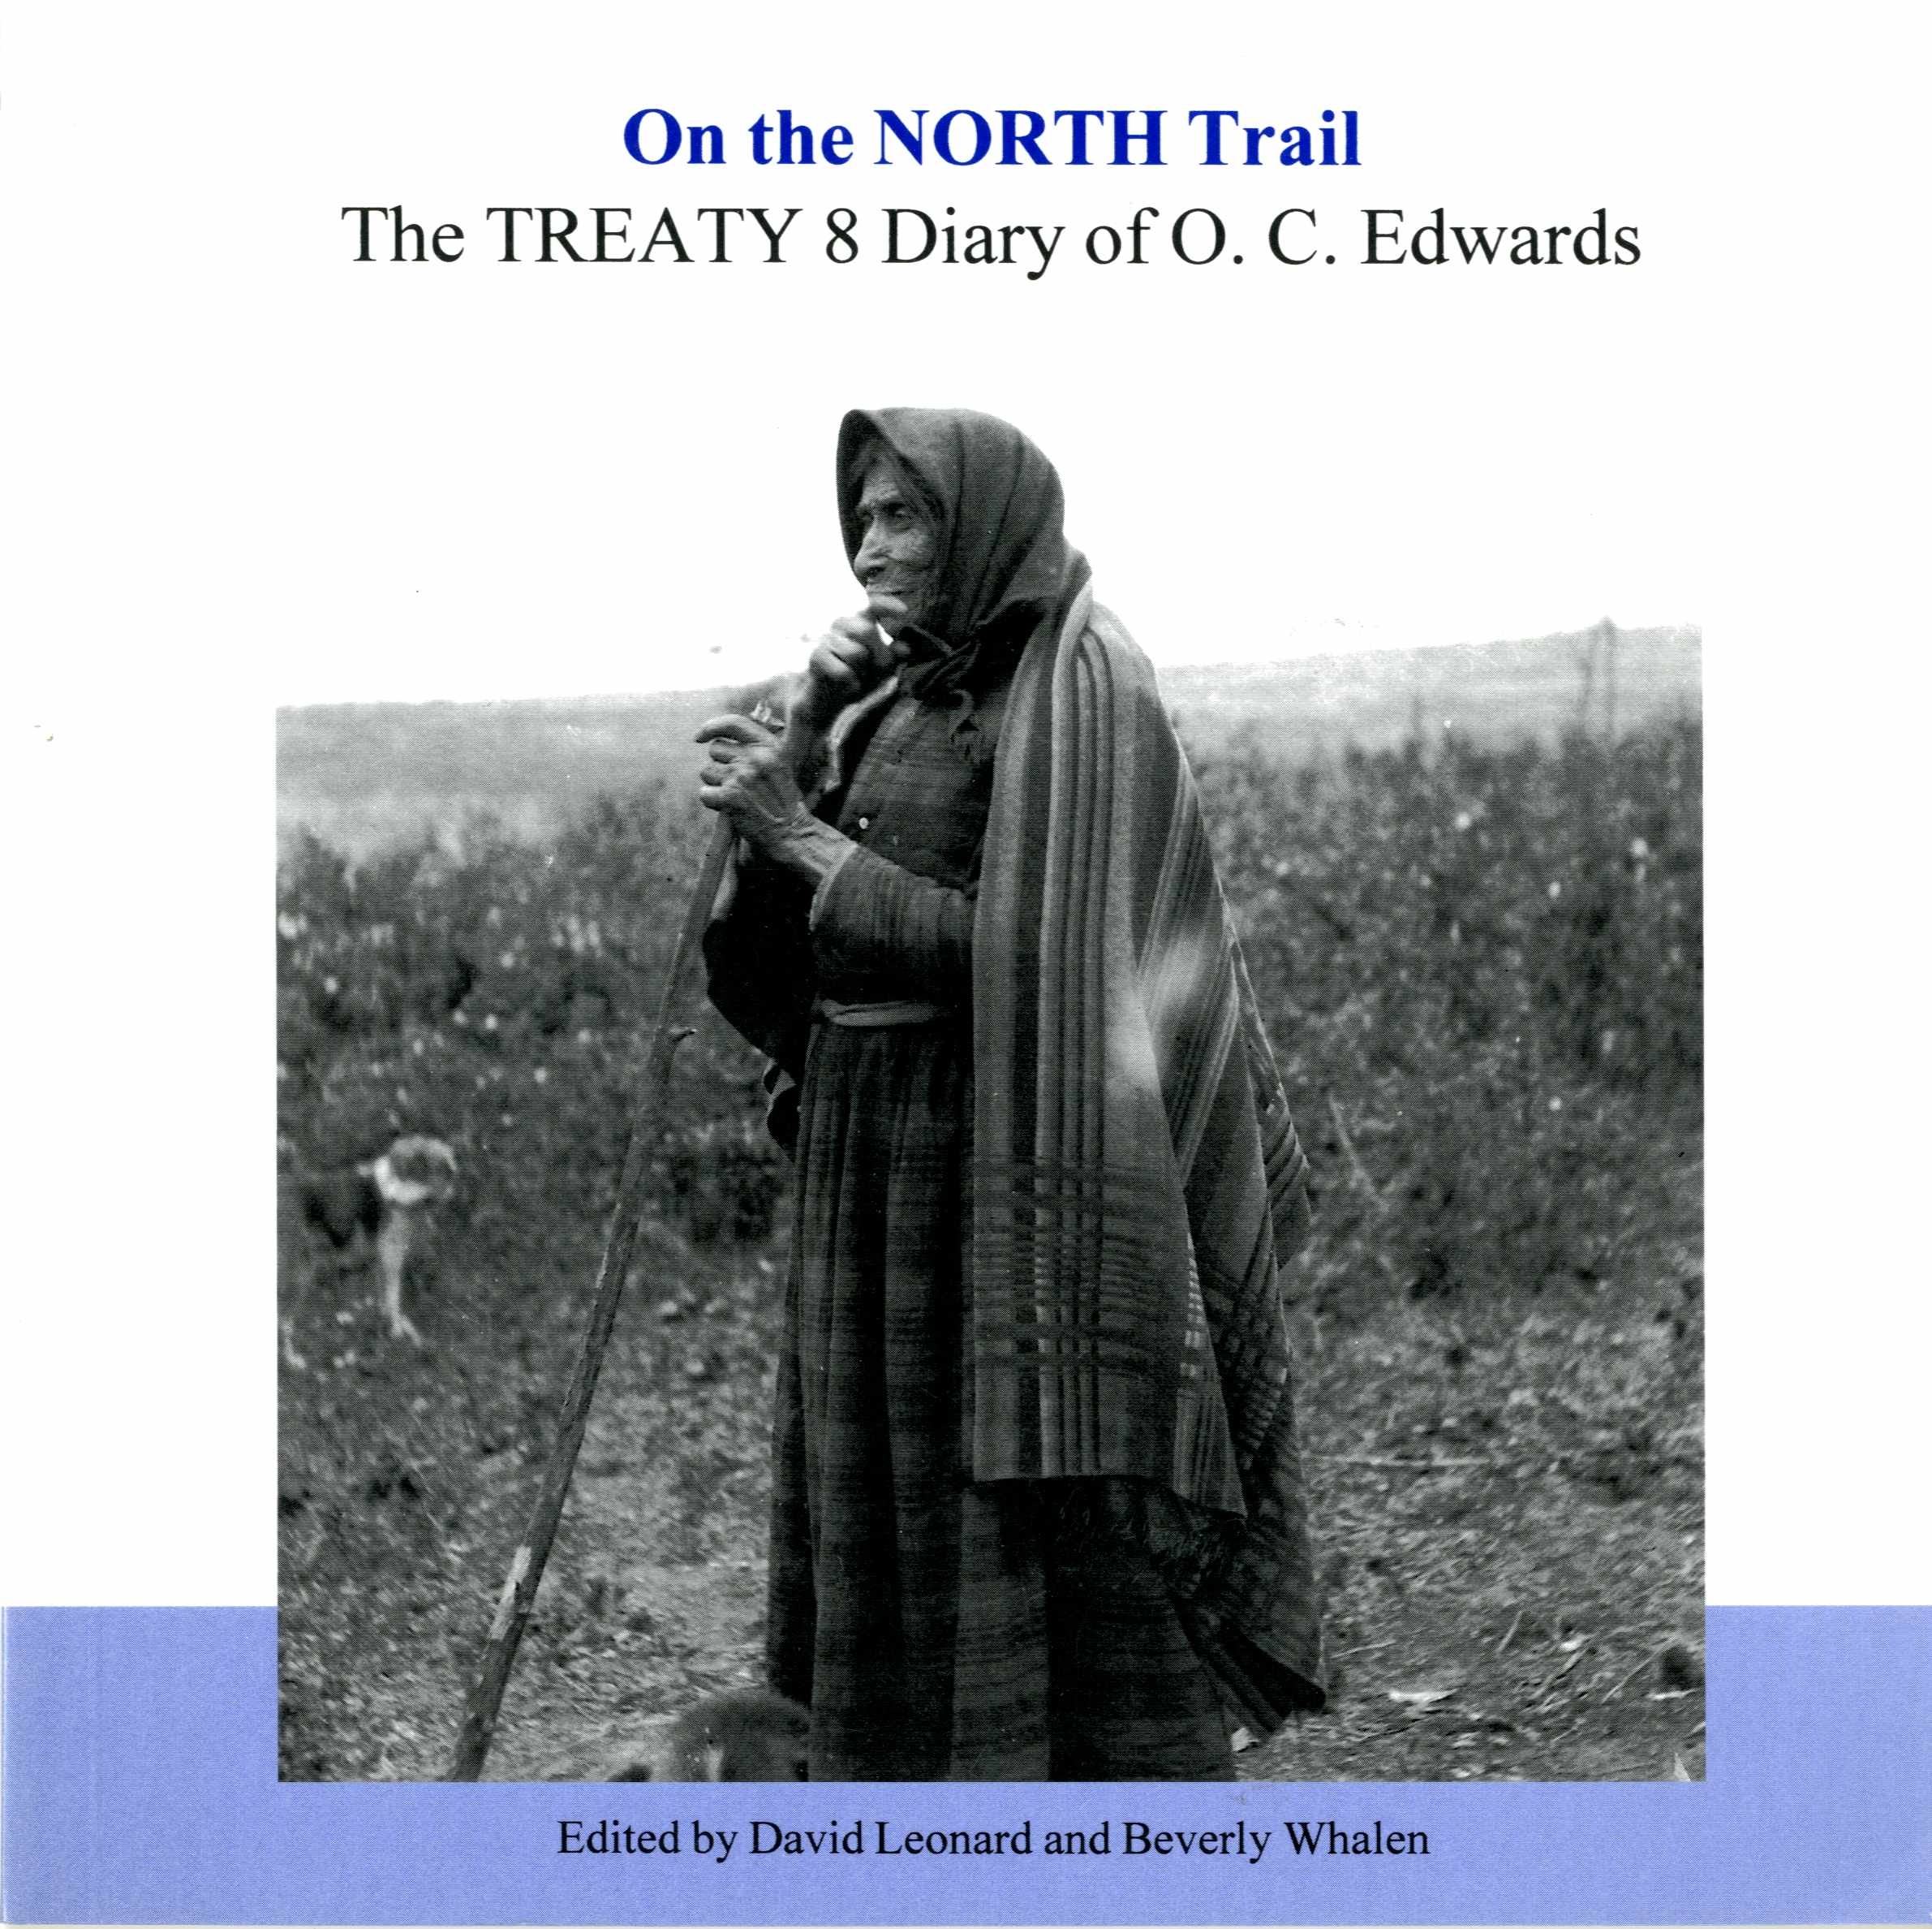 On The North Trail: The Treaty 8 Diary of O.C. Edwards Image